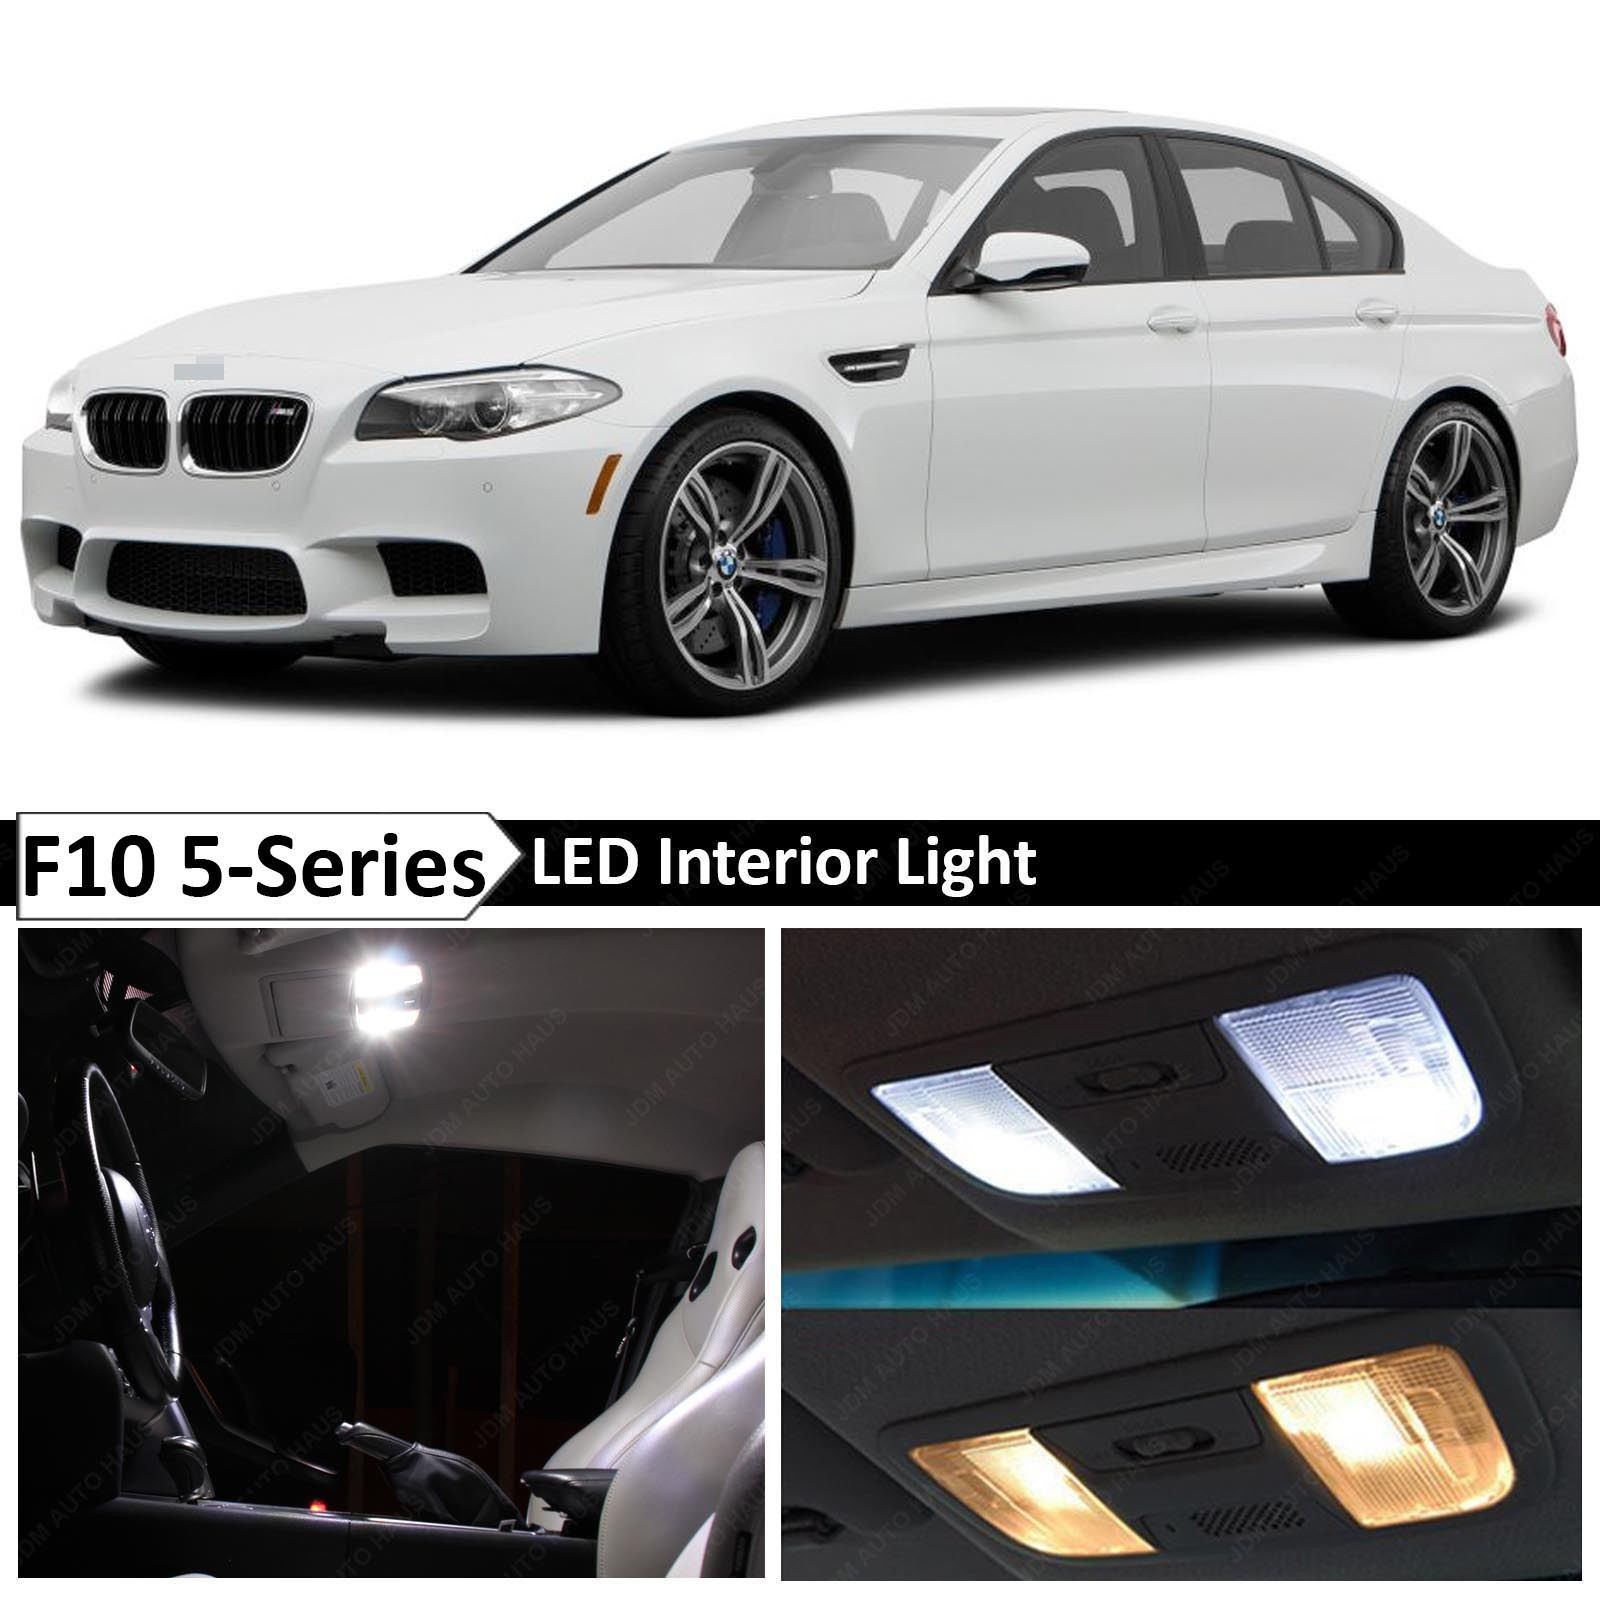 Awesome Awesome White Interior LED Light Package for 2011 2015 BMW 5